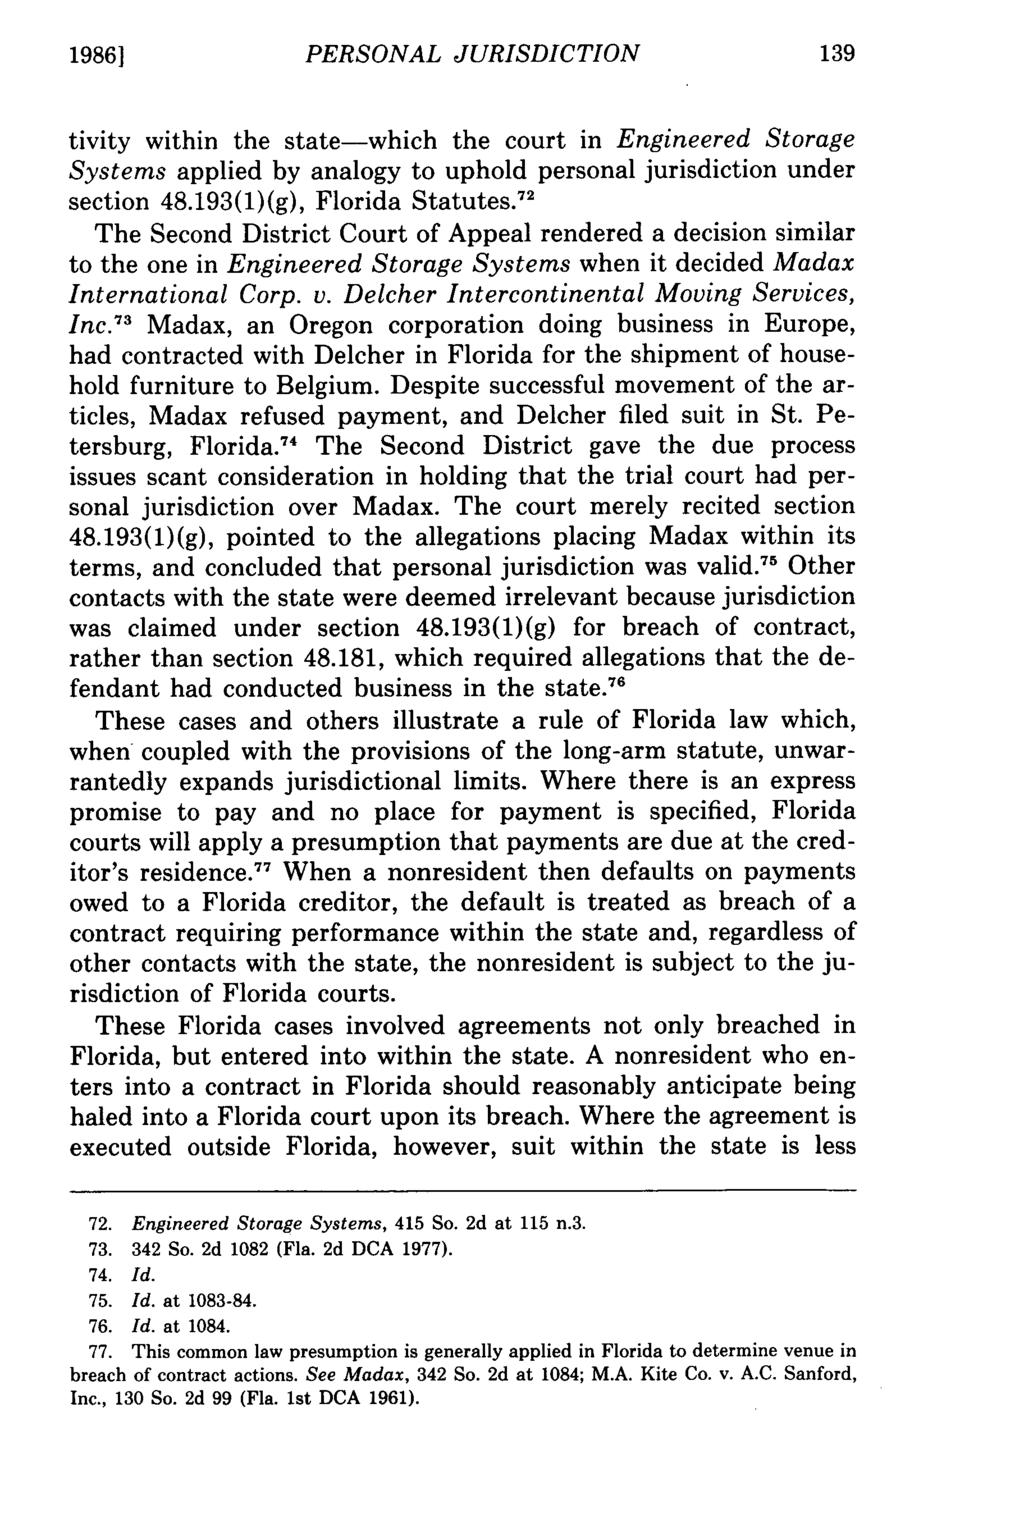 19861 PERSONAL JURISDICTION tivity within the state-which the court in Engineered Storage Systems applied by analogy to uphold personal jurisdiction under section 48.193(1)(g), Florida Statutes.